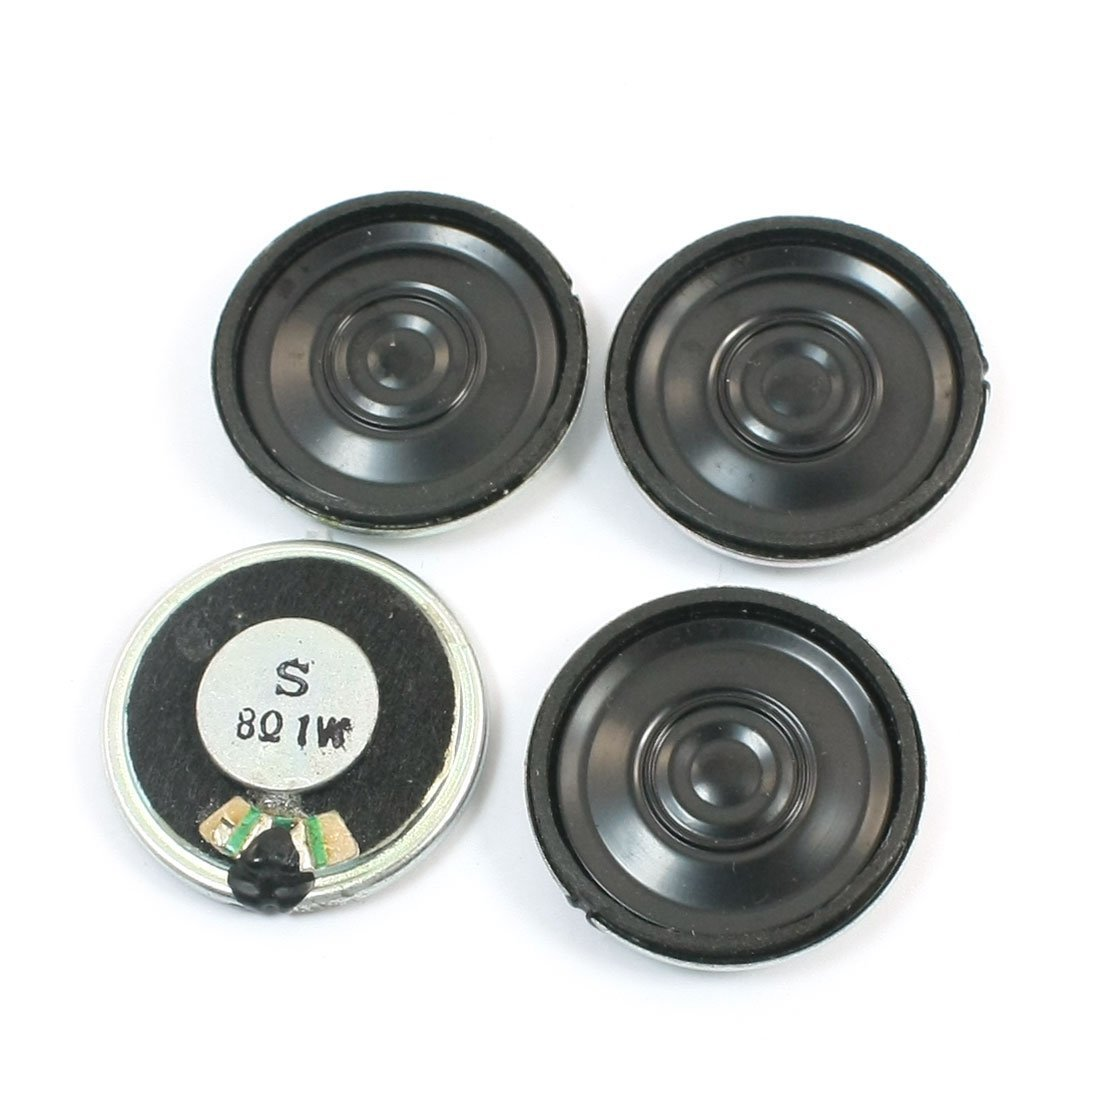 5pcs/lot Ultra-thin 1W 8R Acoustic Loudspeaker 8 Ohm 1W 5CM Speaker Diameter Thickness 50MM Speakers For Arduino Diy Electronic